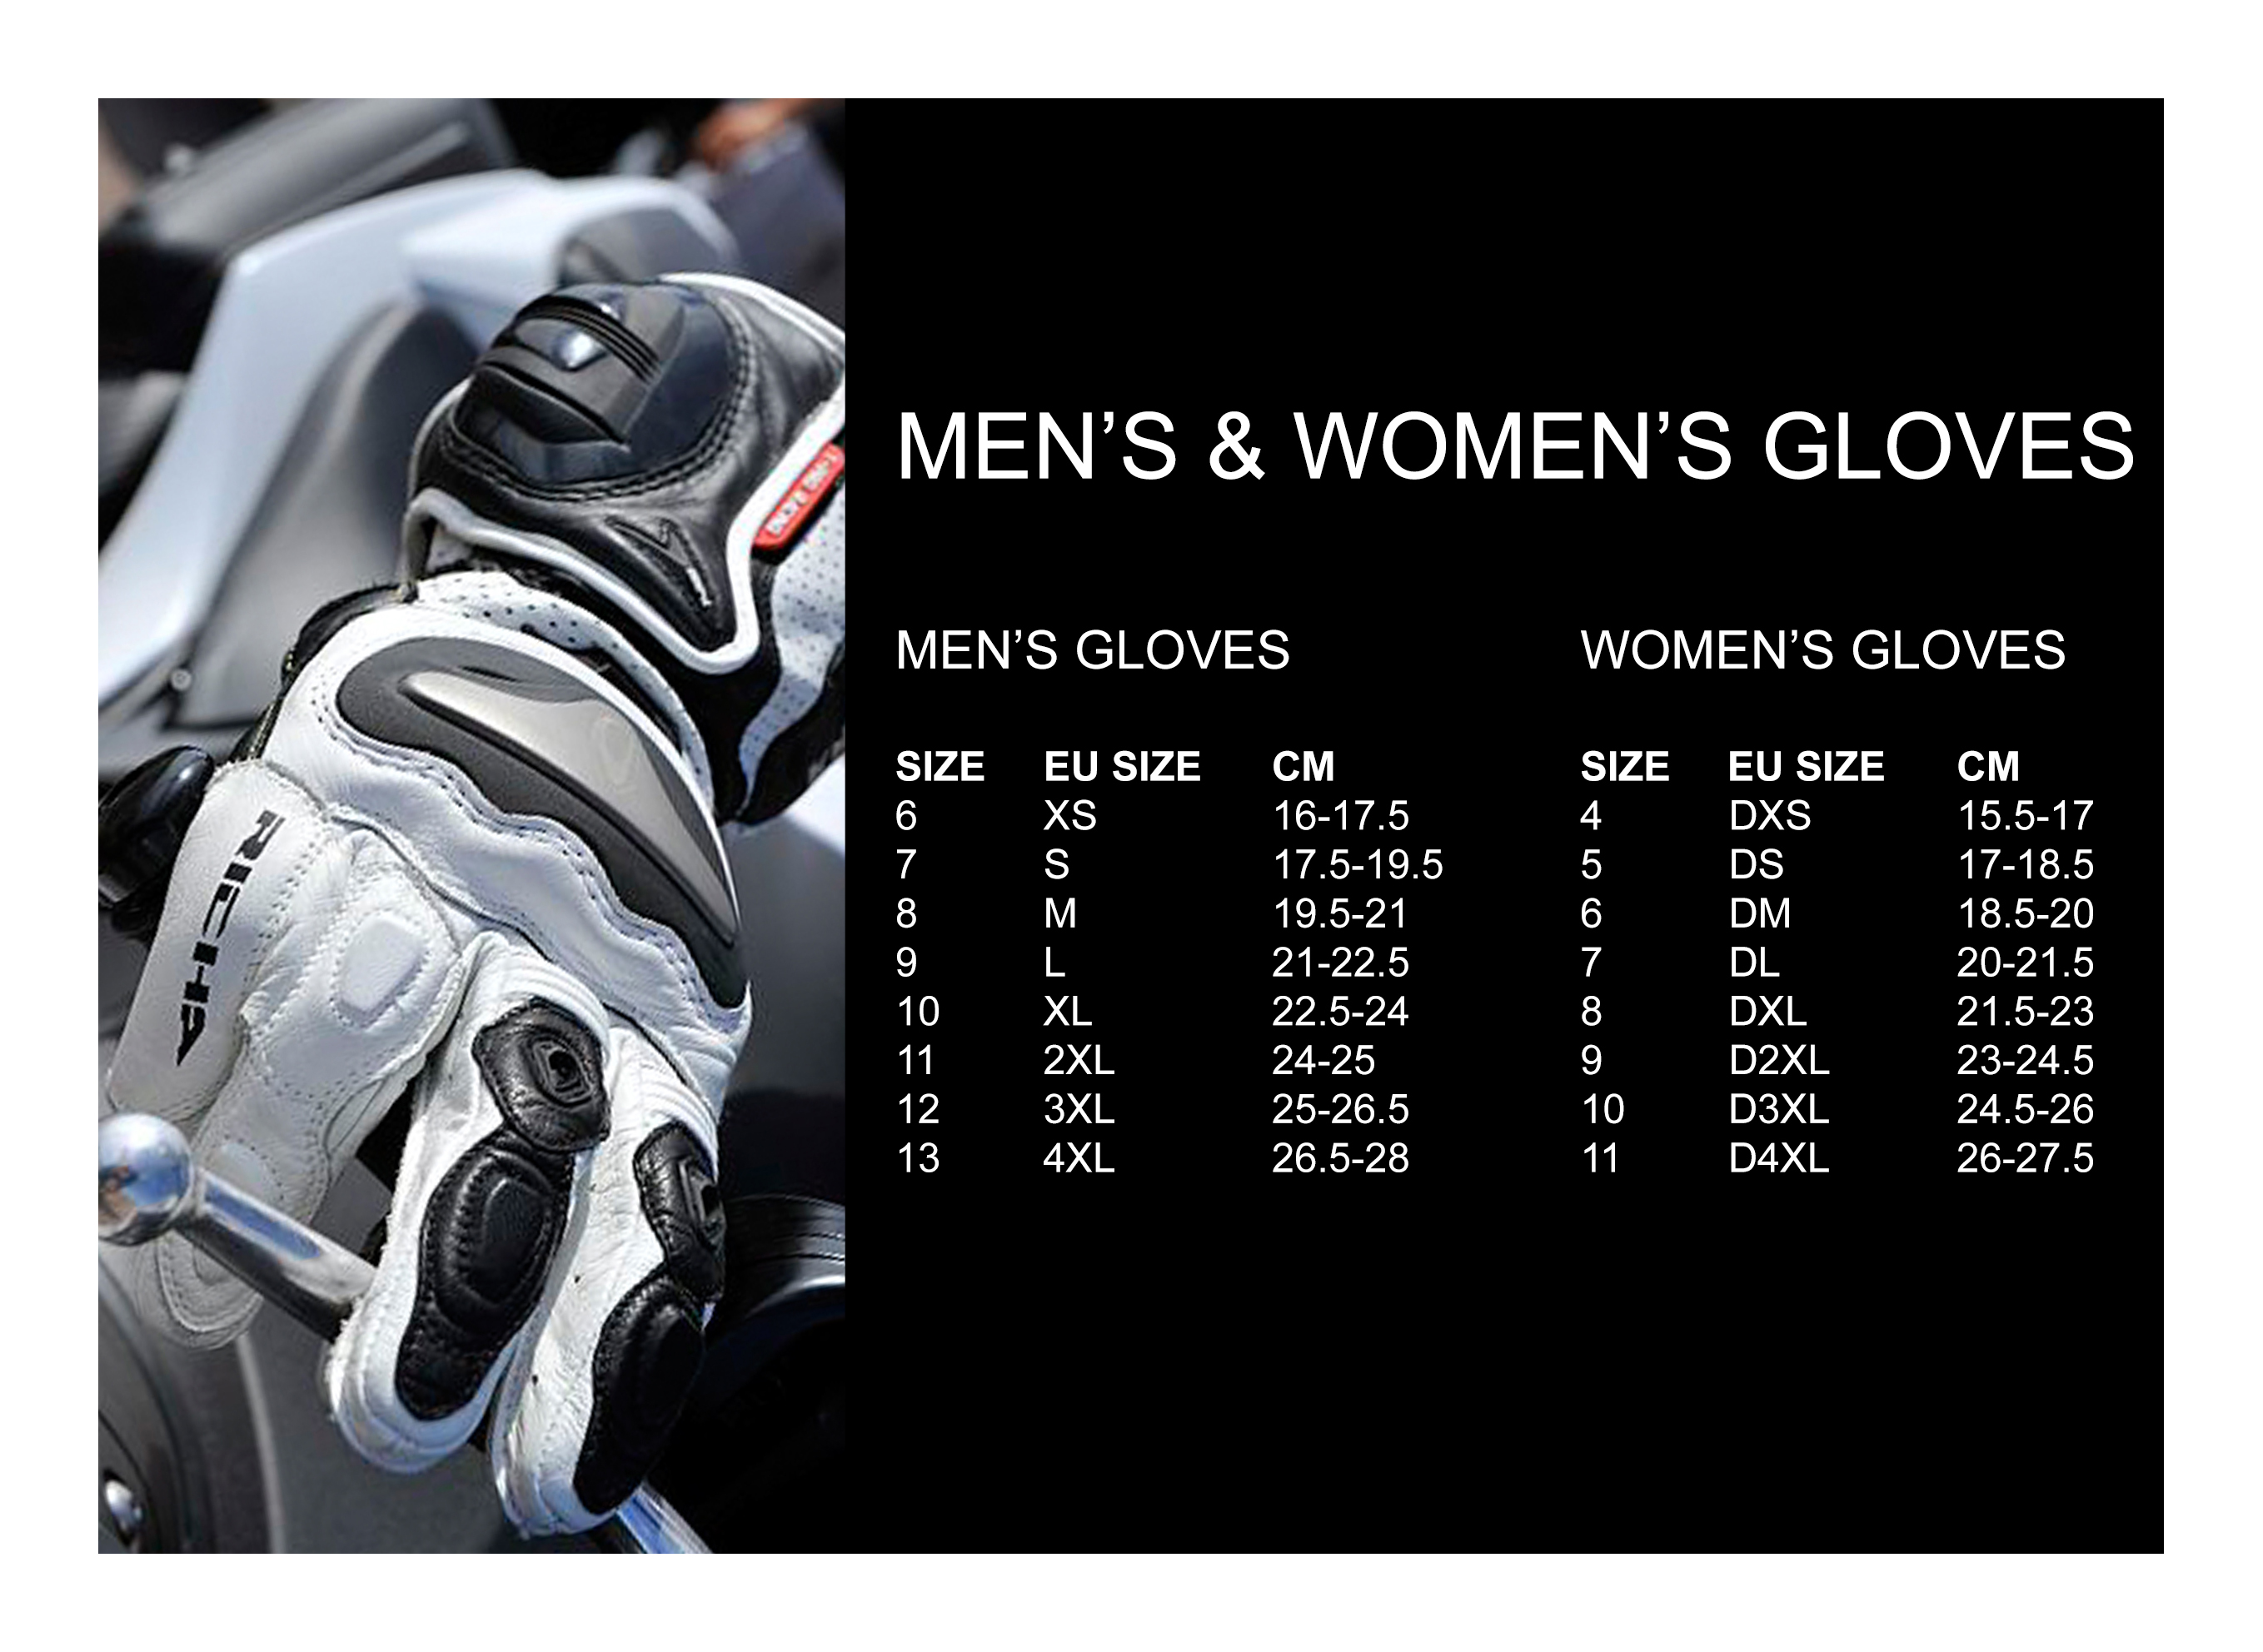 Men's & Women's Gloves sizes